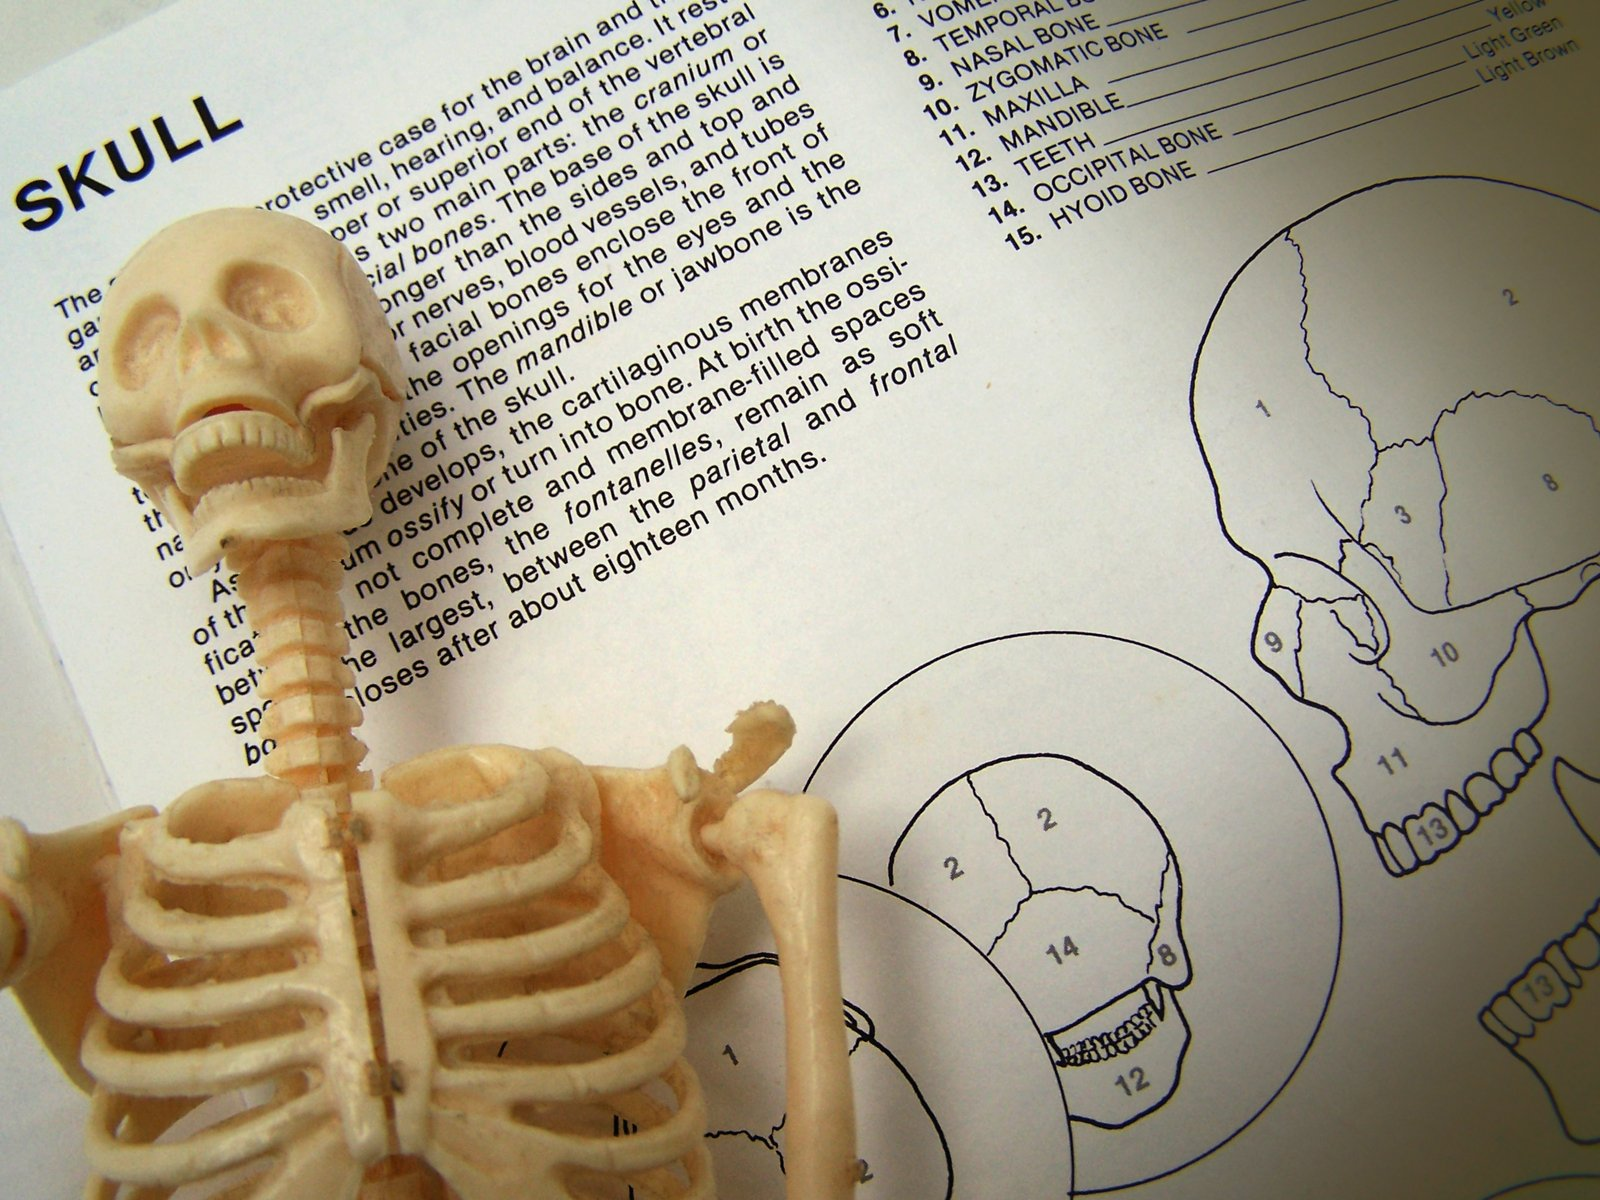 Skeleton Study/Pile of 'reports' and 'studies'